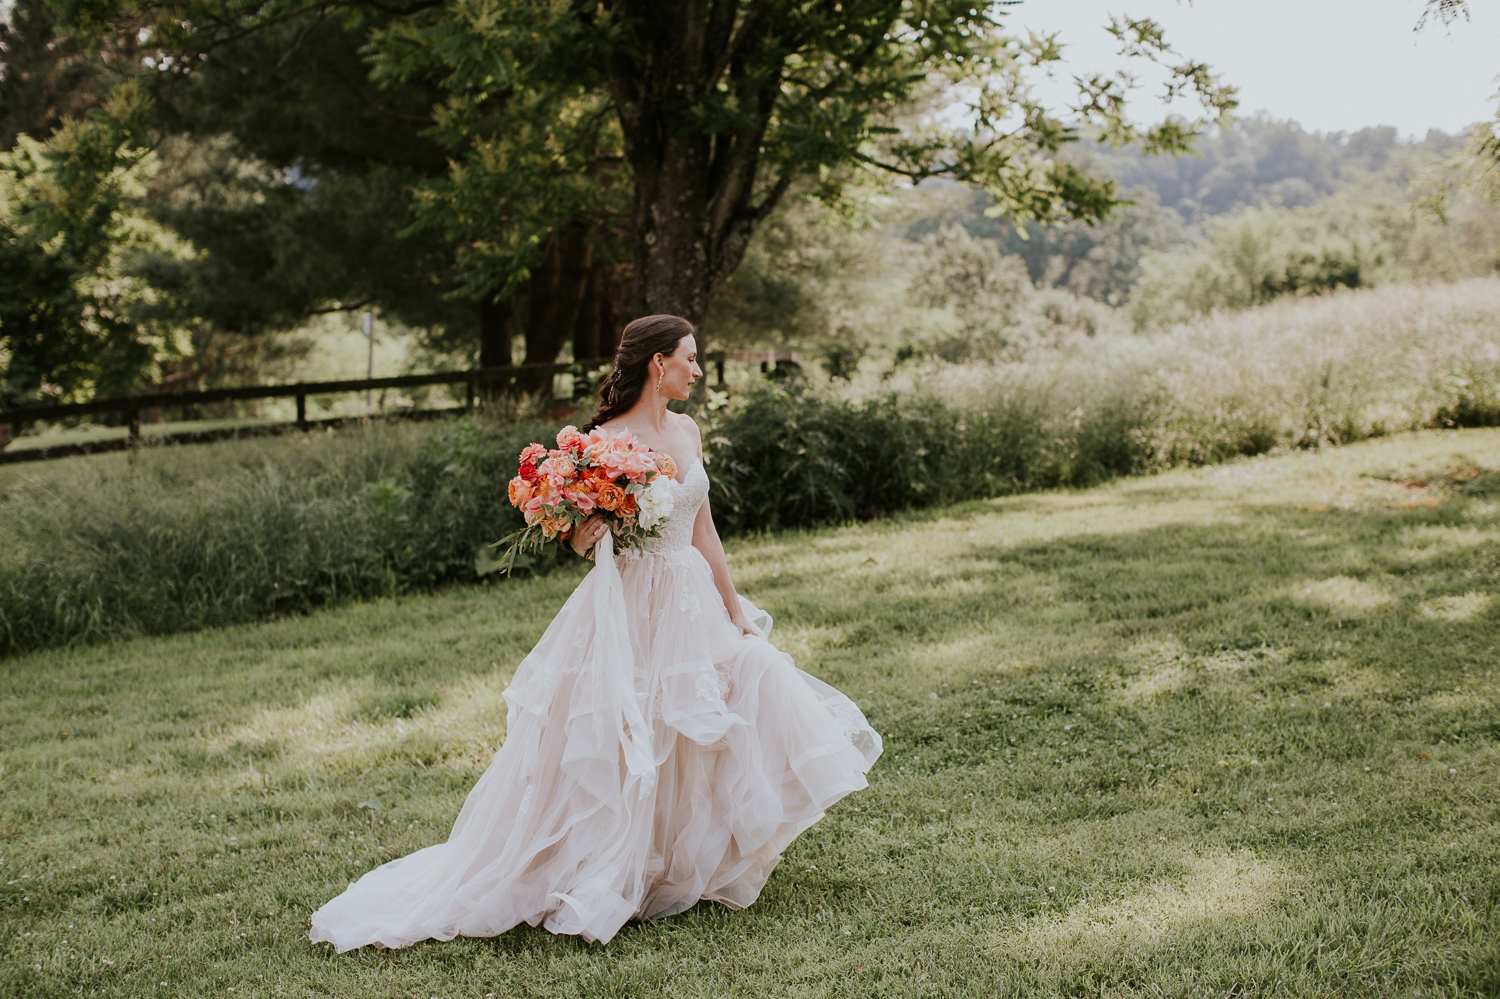 purceville-virginia-tranquility-farms-wedding-photography-planning-coordination 19.jpg